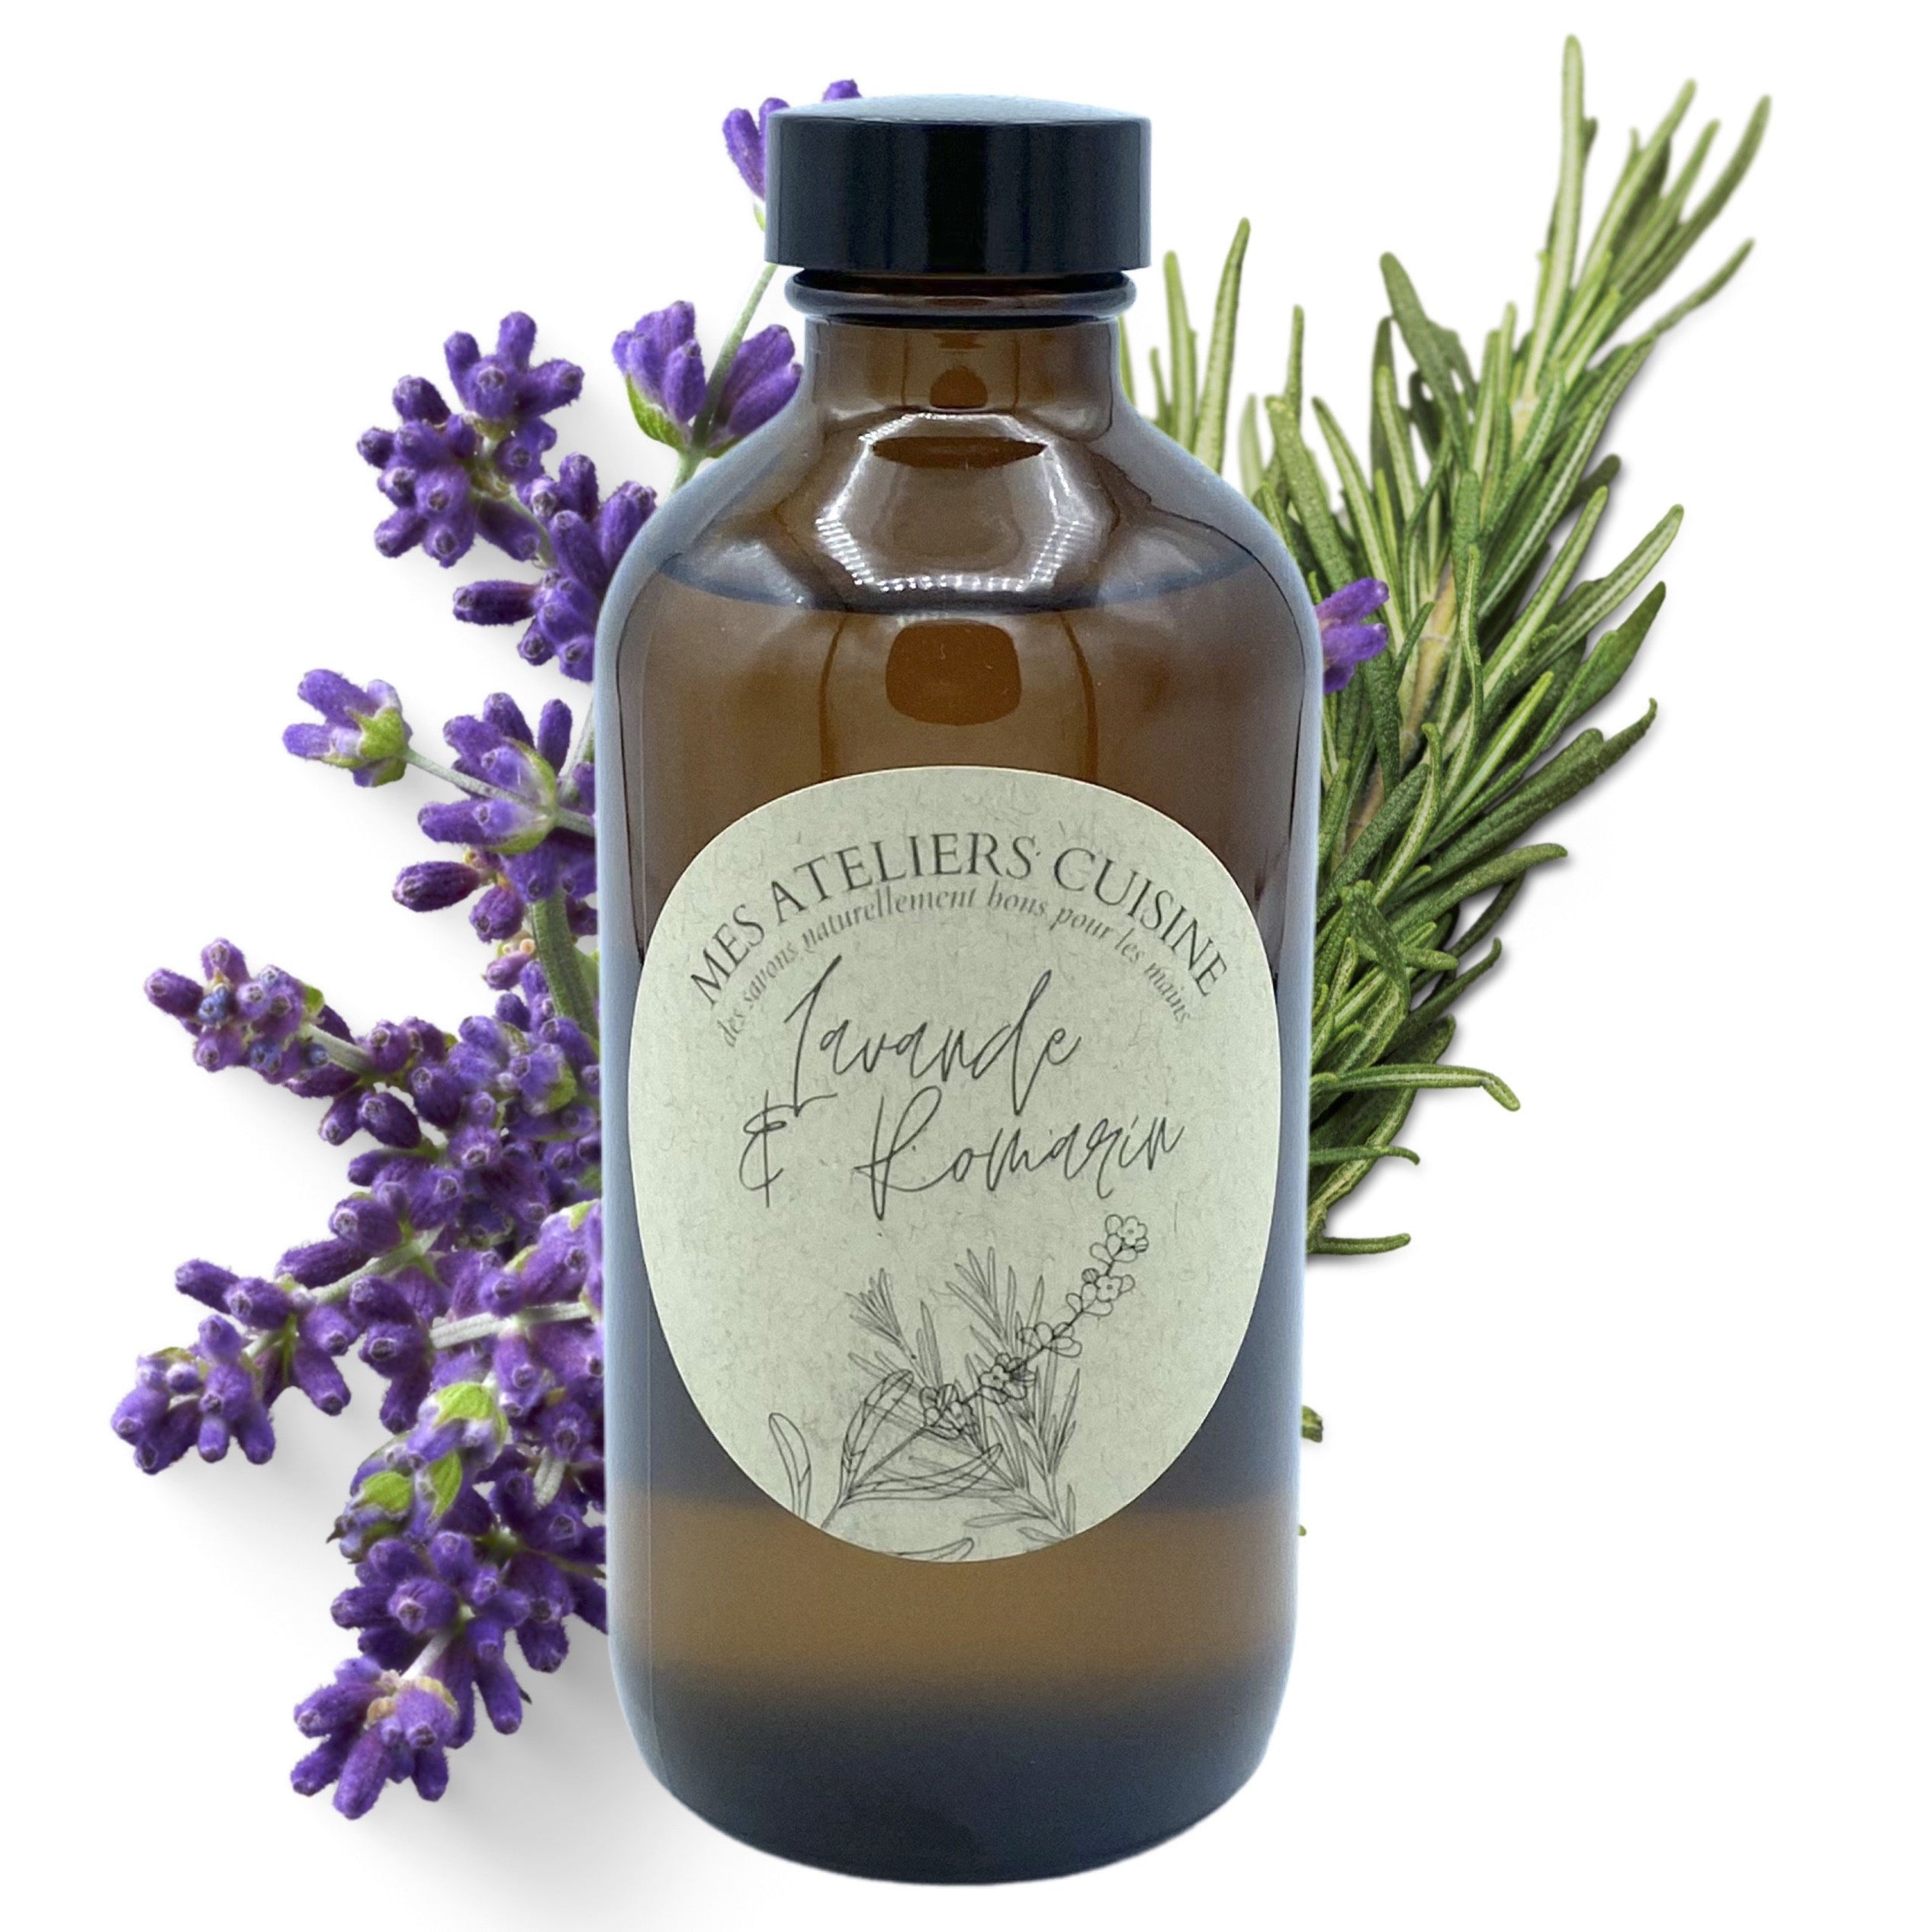 Lavender and rosemary hand soap